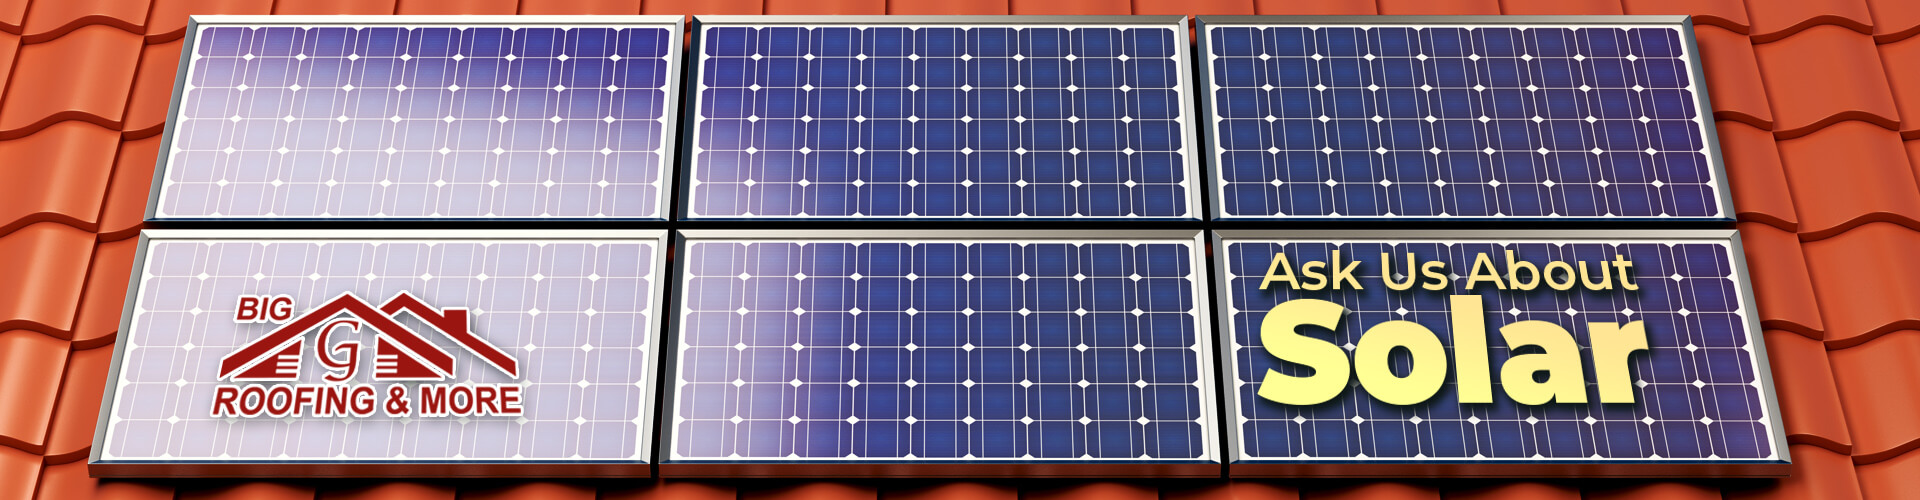 Big G Solar Roofing 2a